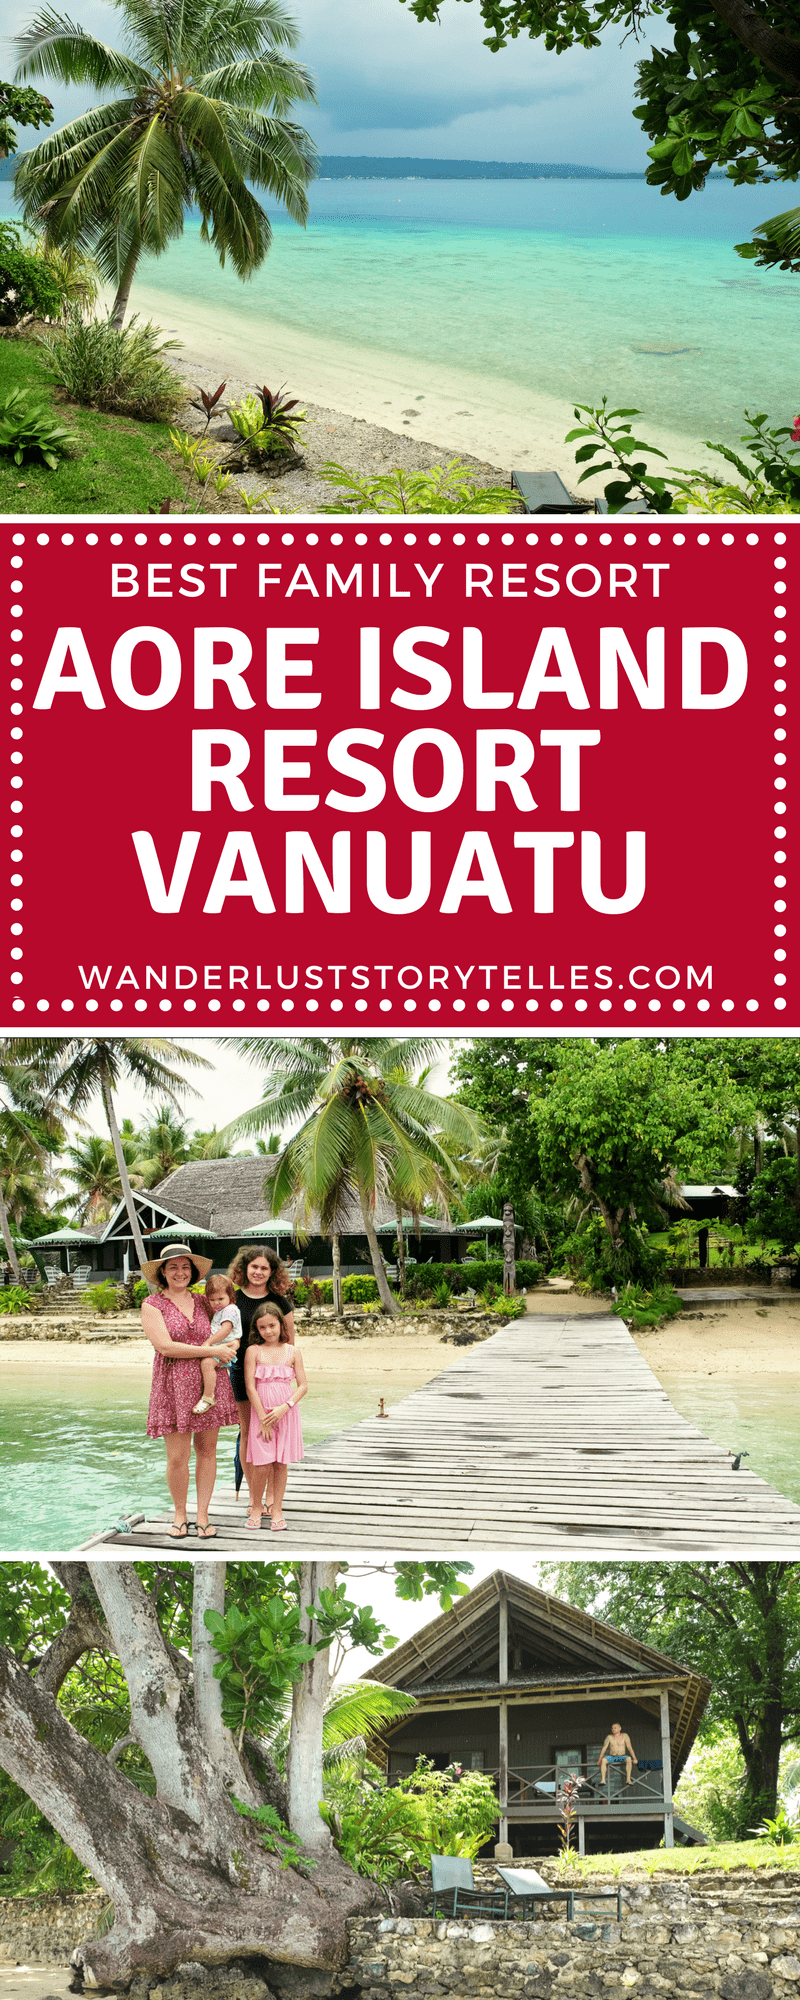 The best Vanuatu family resort! Aore Island resort is the perfect place to base yourself for your Vanuatu family holiday. It is a 10min ferry ride away from Espiritu Santo Island and there is loads of things to do to keep everyone busy. Click to see why we love this Vanuatu family accommodation so much! #Vanuatu #SouthPacific #TravelwithKids